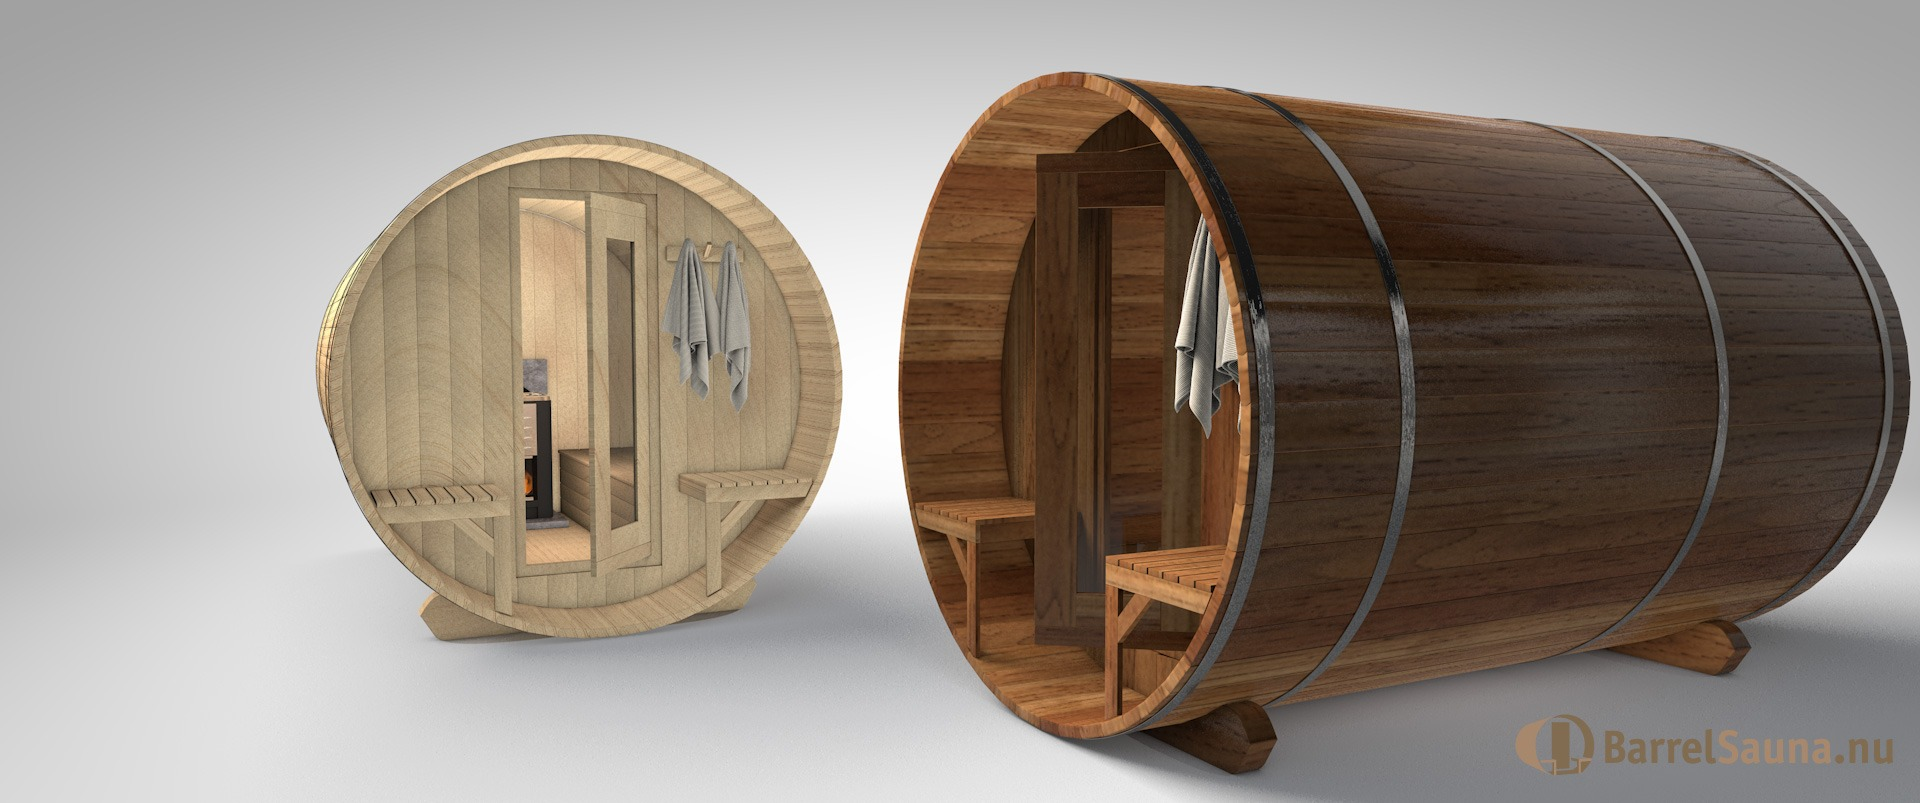 Barrelsauna red cedar